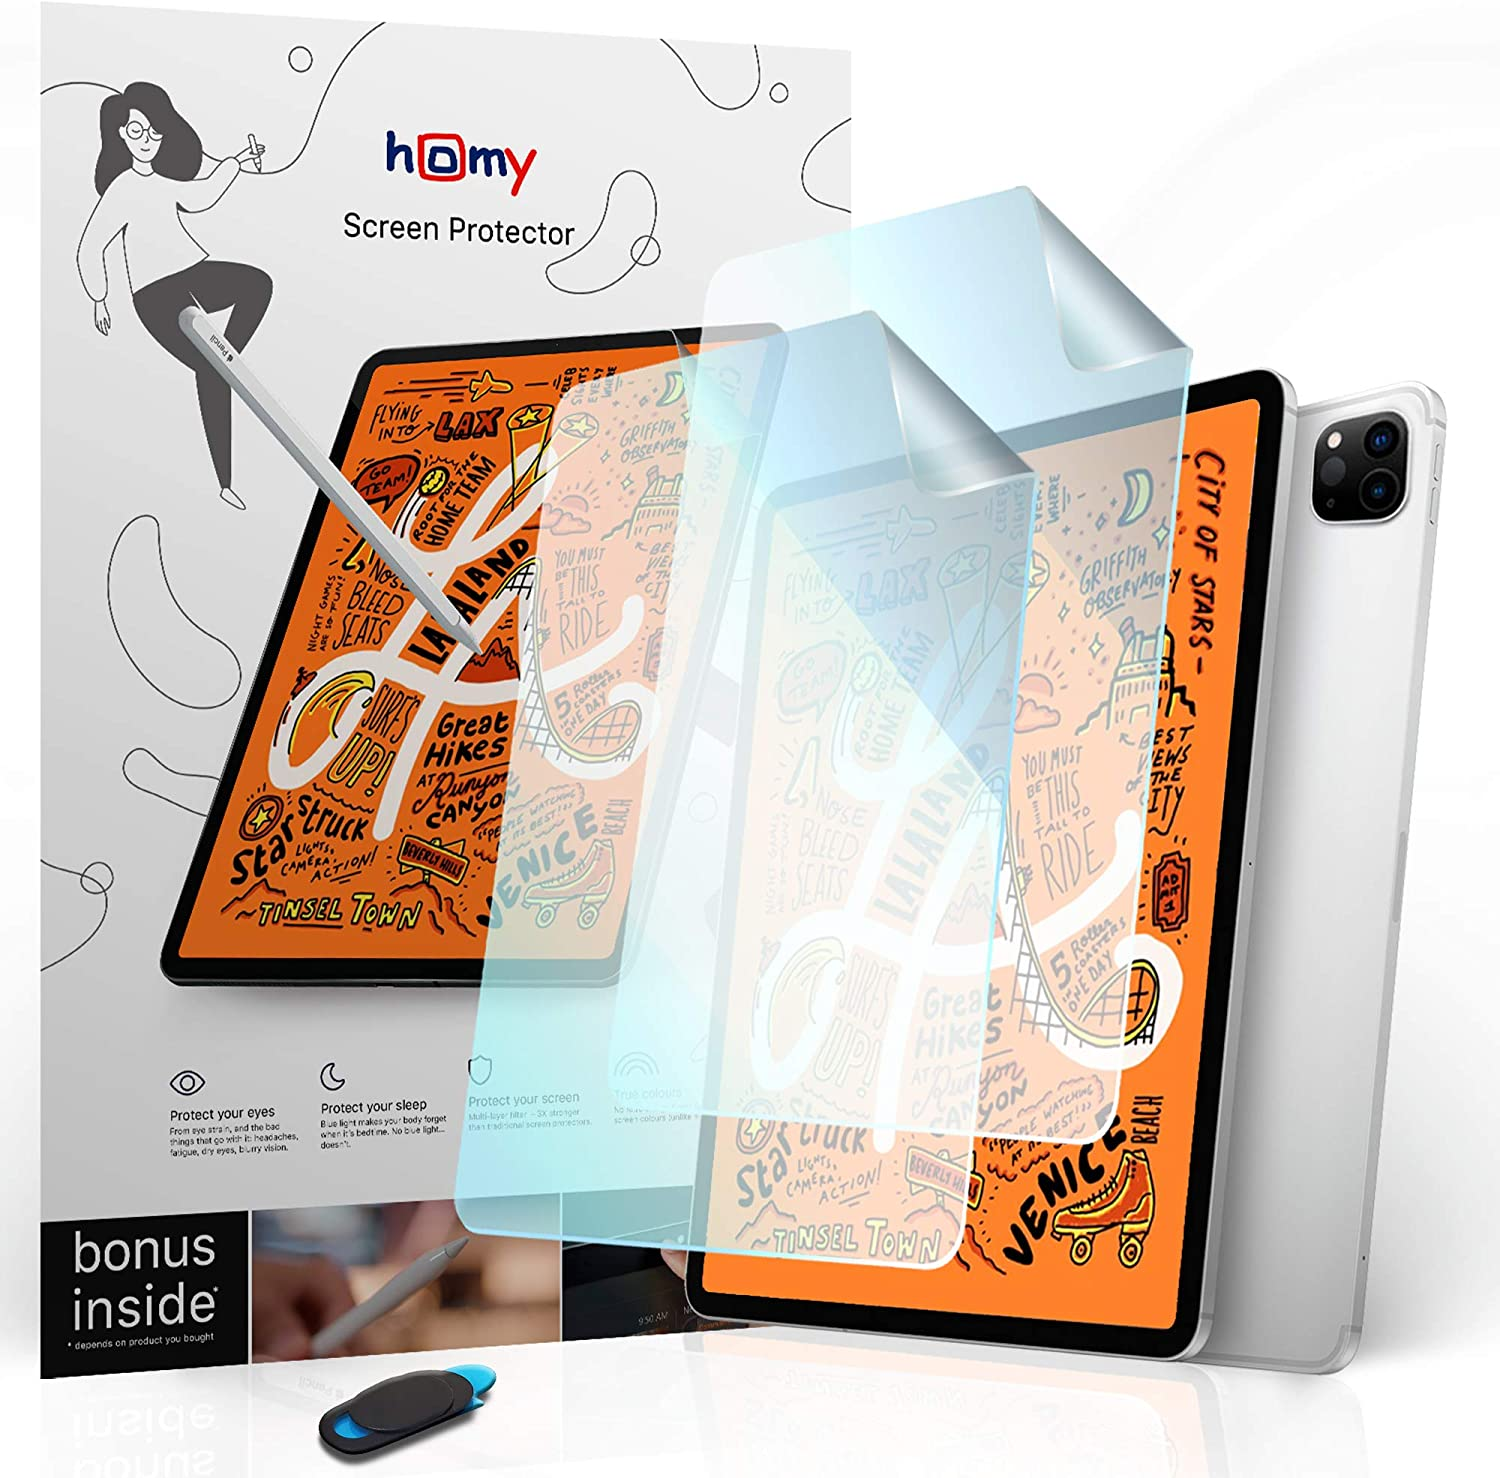 Homy Paperfeel Screen Protector [2-Pack] for iPad 10.9 Air, 11 Pro. Anti-Blue Light (Eye Care) Protection. Anti-Glare Matte Surface for Drawing, Great Sensitivity. Scratch Proof. Bonus: WebCam Cover